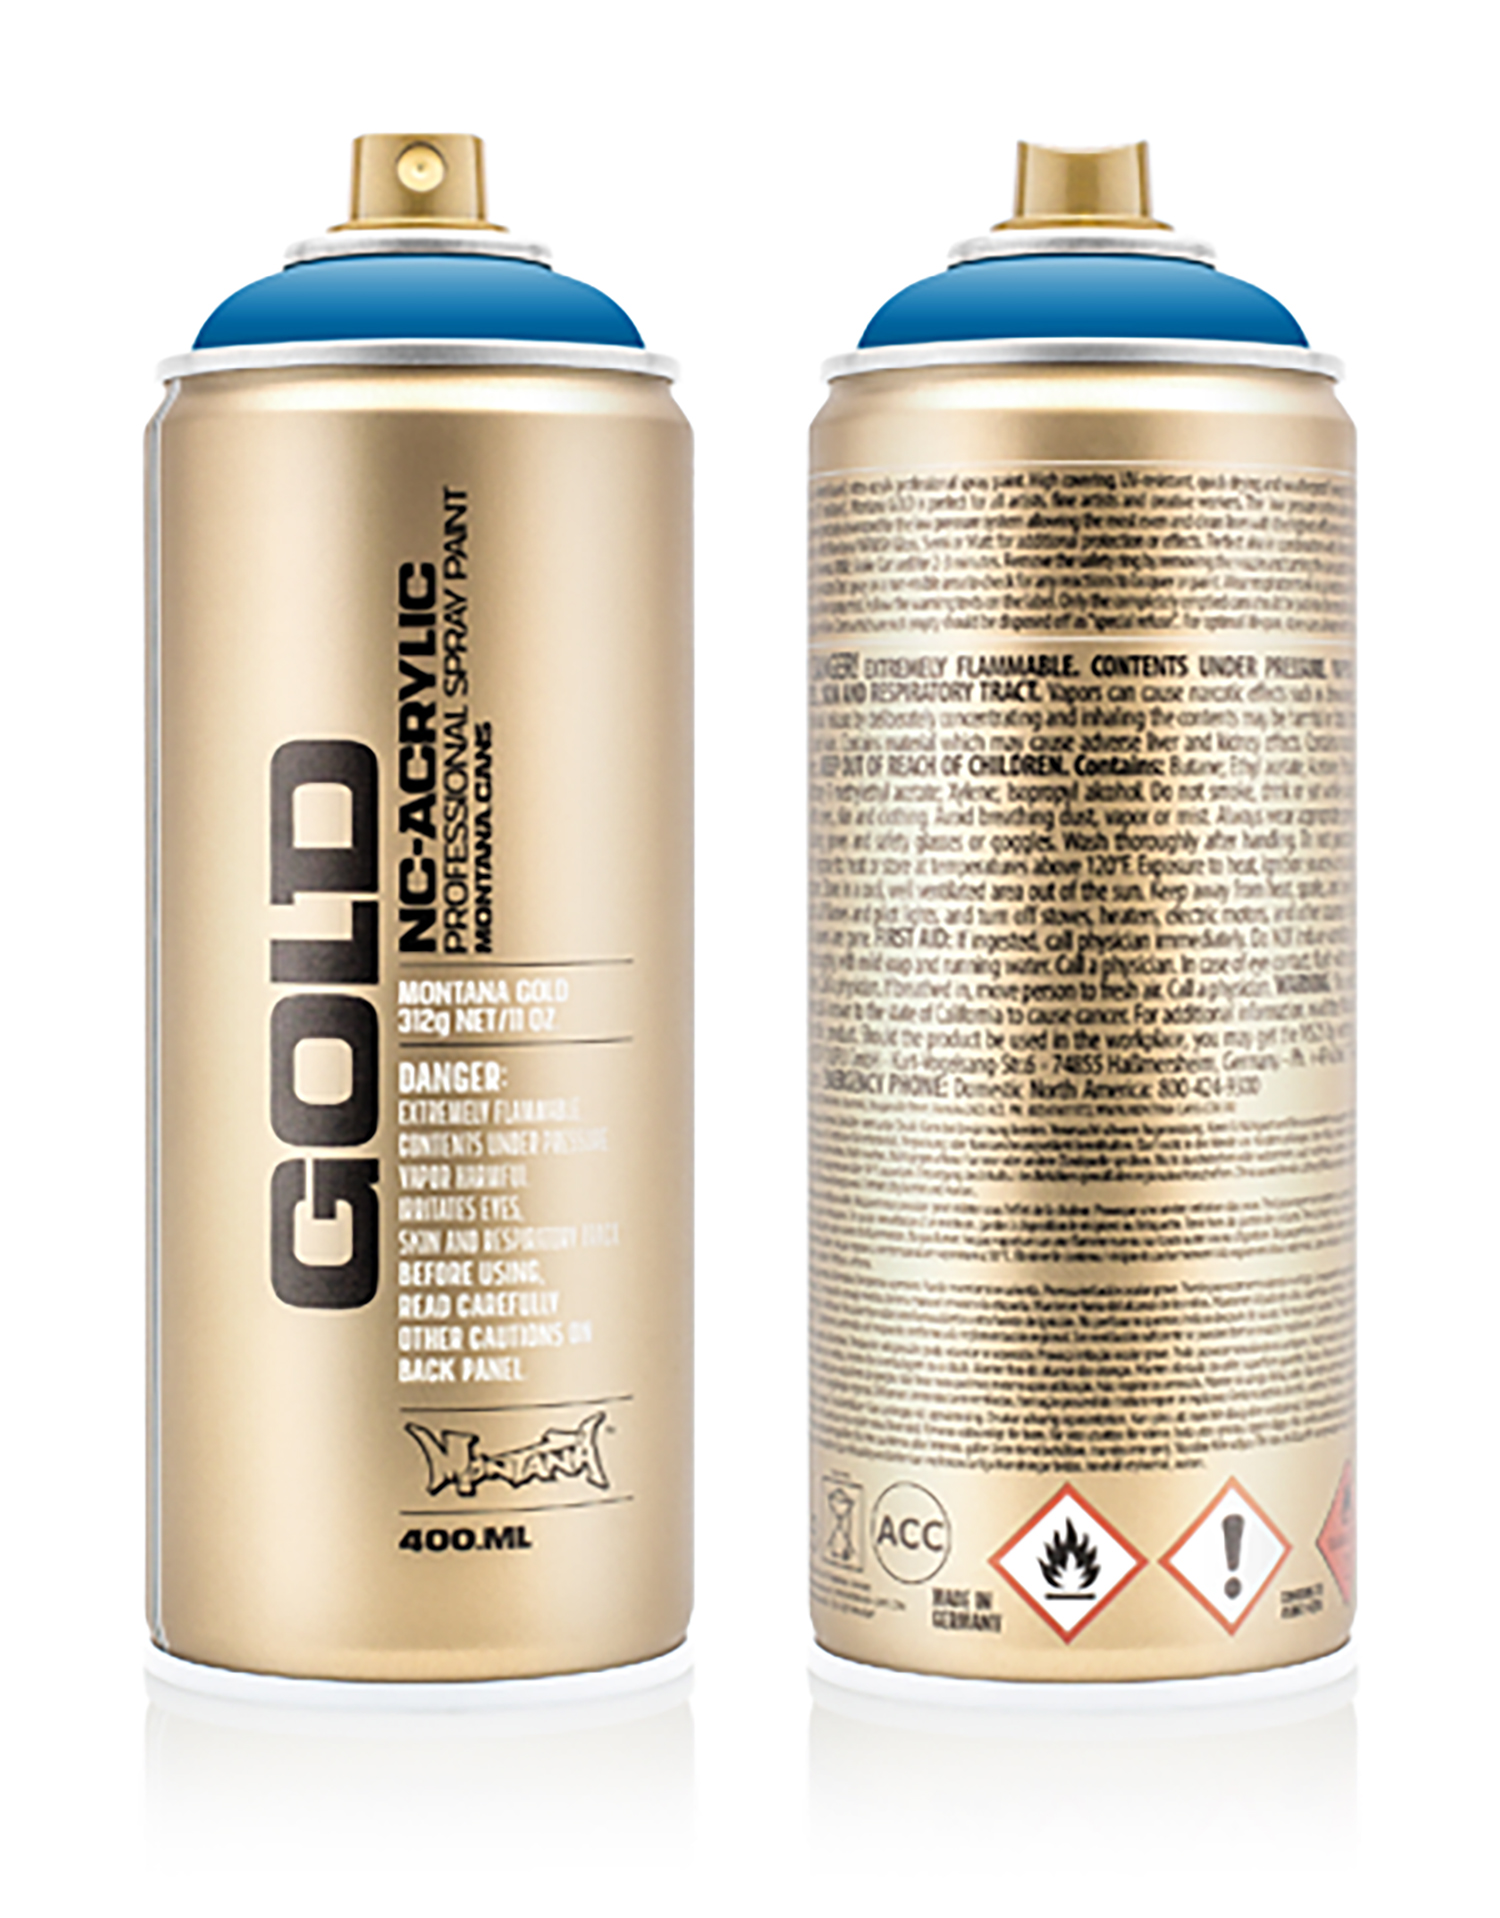 MONTANA-GOLD-SPRAY-400ML-G-5060